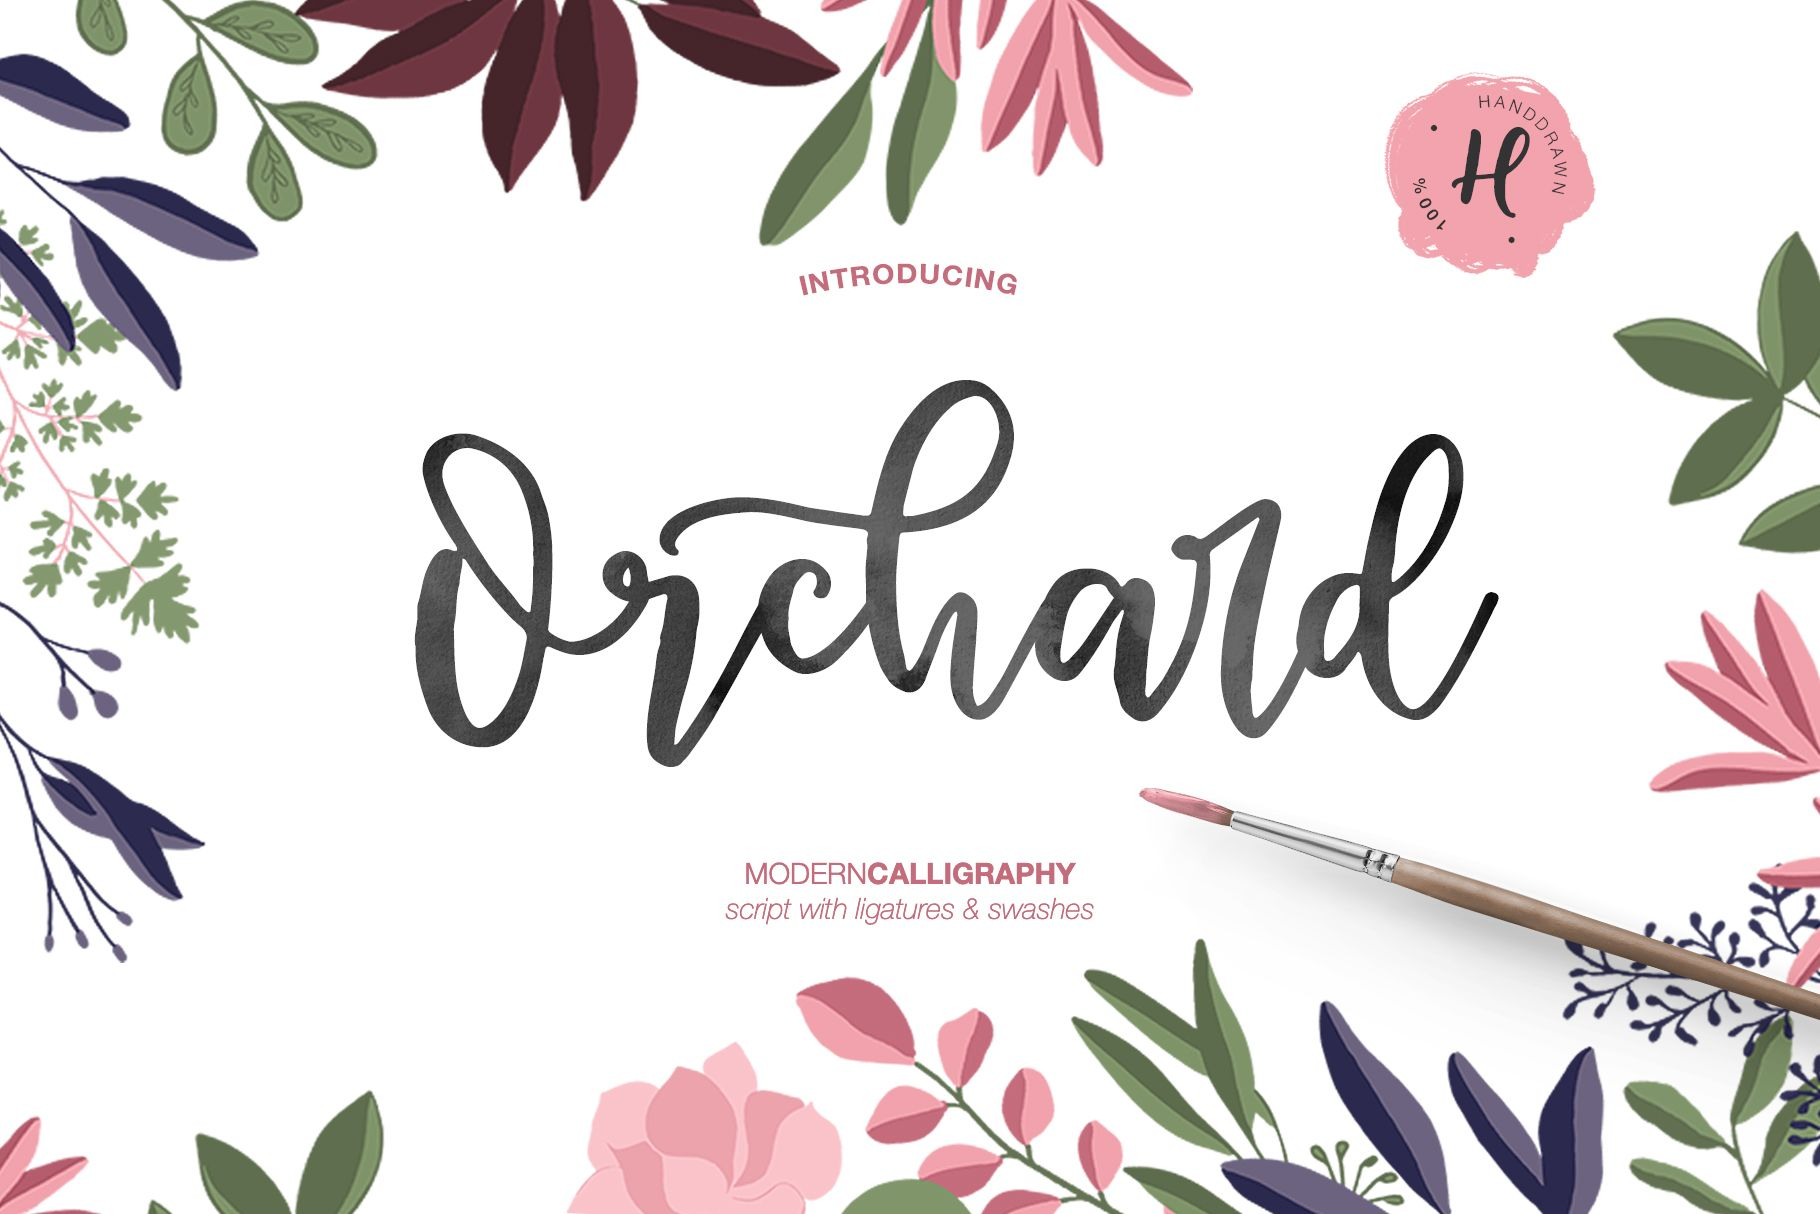 Orchard modern calligraphy Modern calligraphy, Fancy